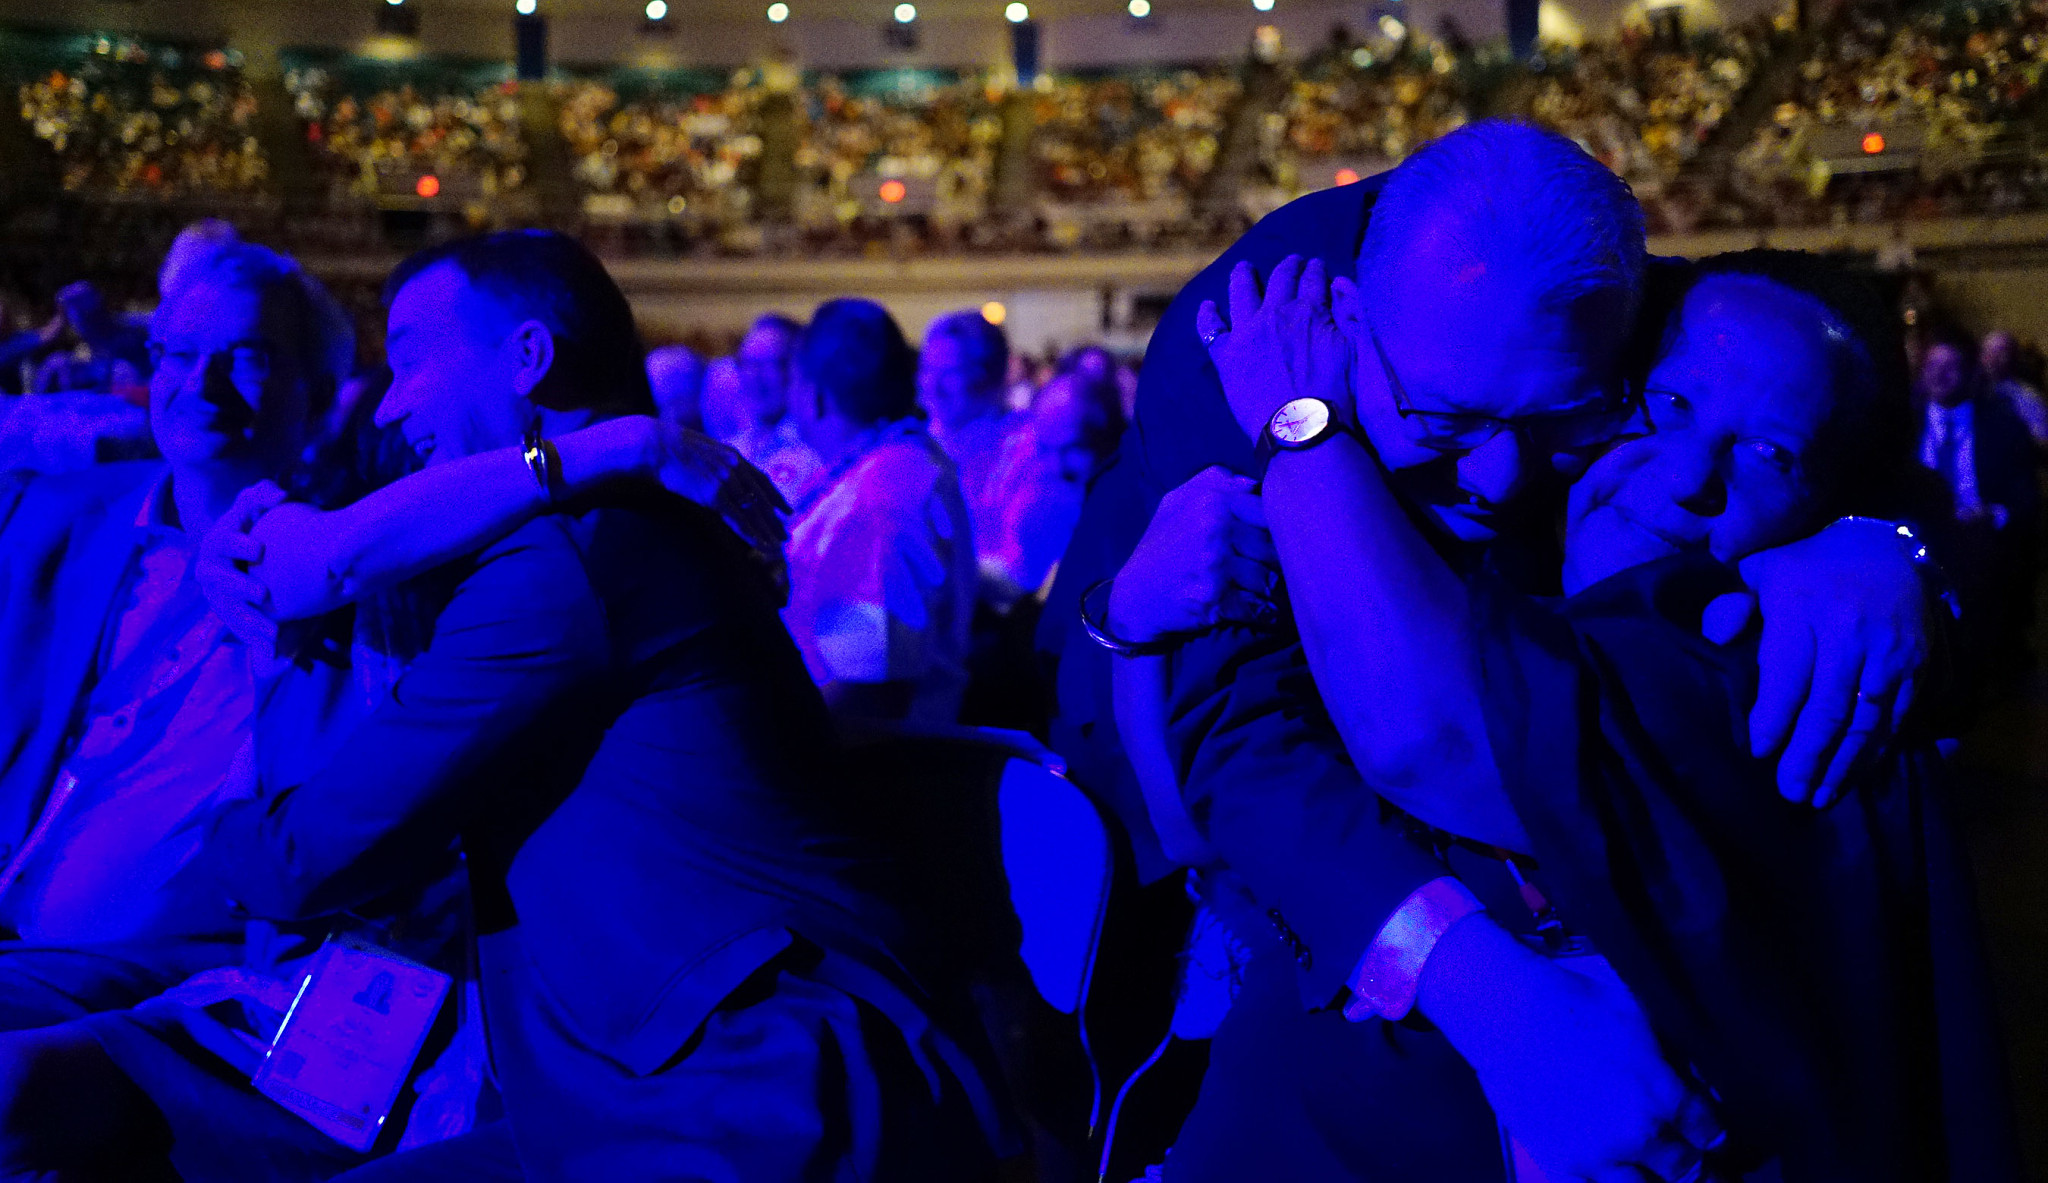 <p>Crabbe asked audience members to greet the people sitting next to them, and plenty of hugs were shared.</p>